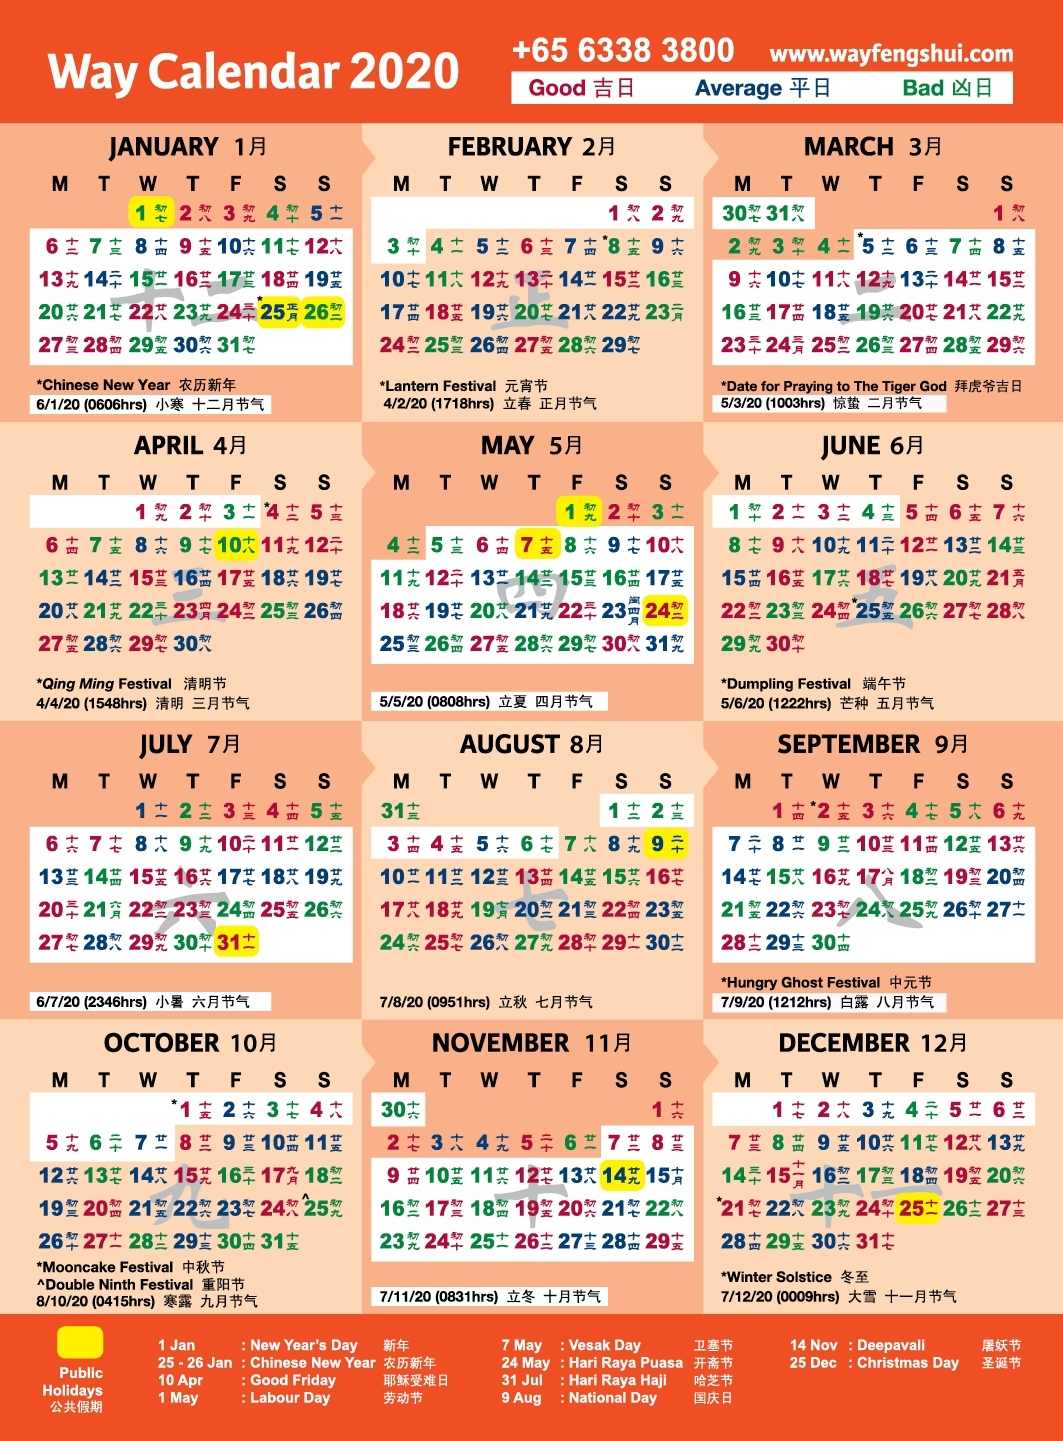 2020 Way Calendar - Feng Shui Master Singapore, Chinese